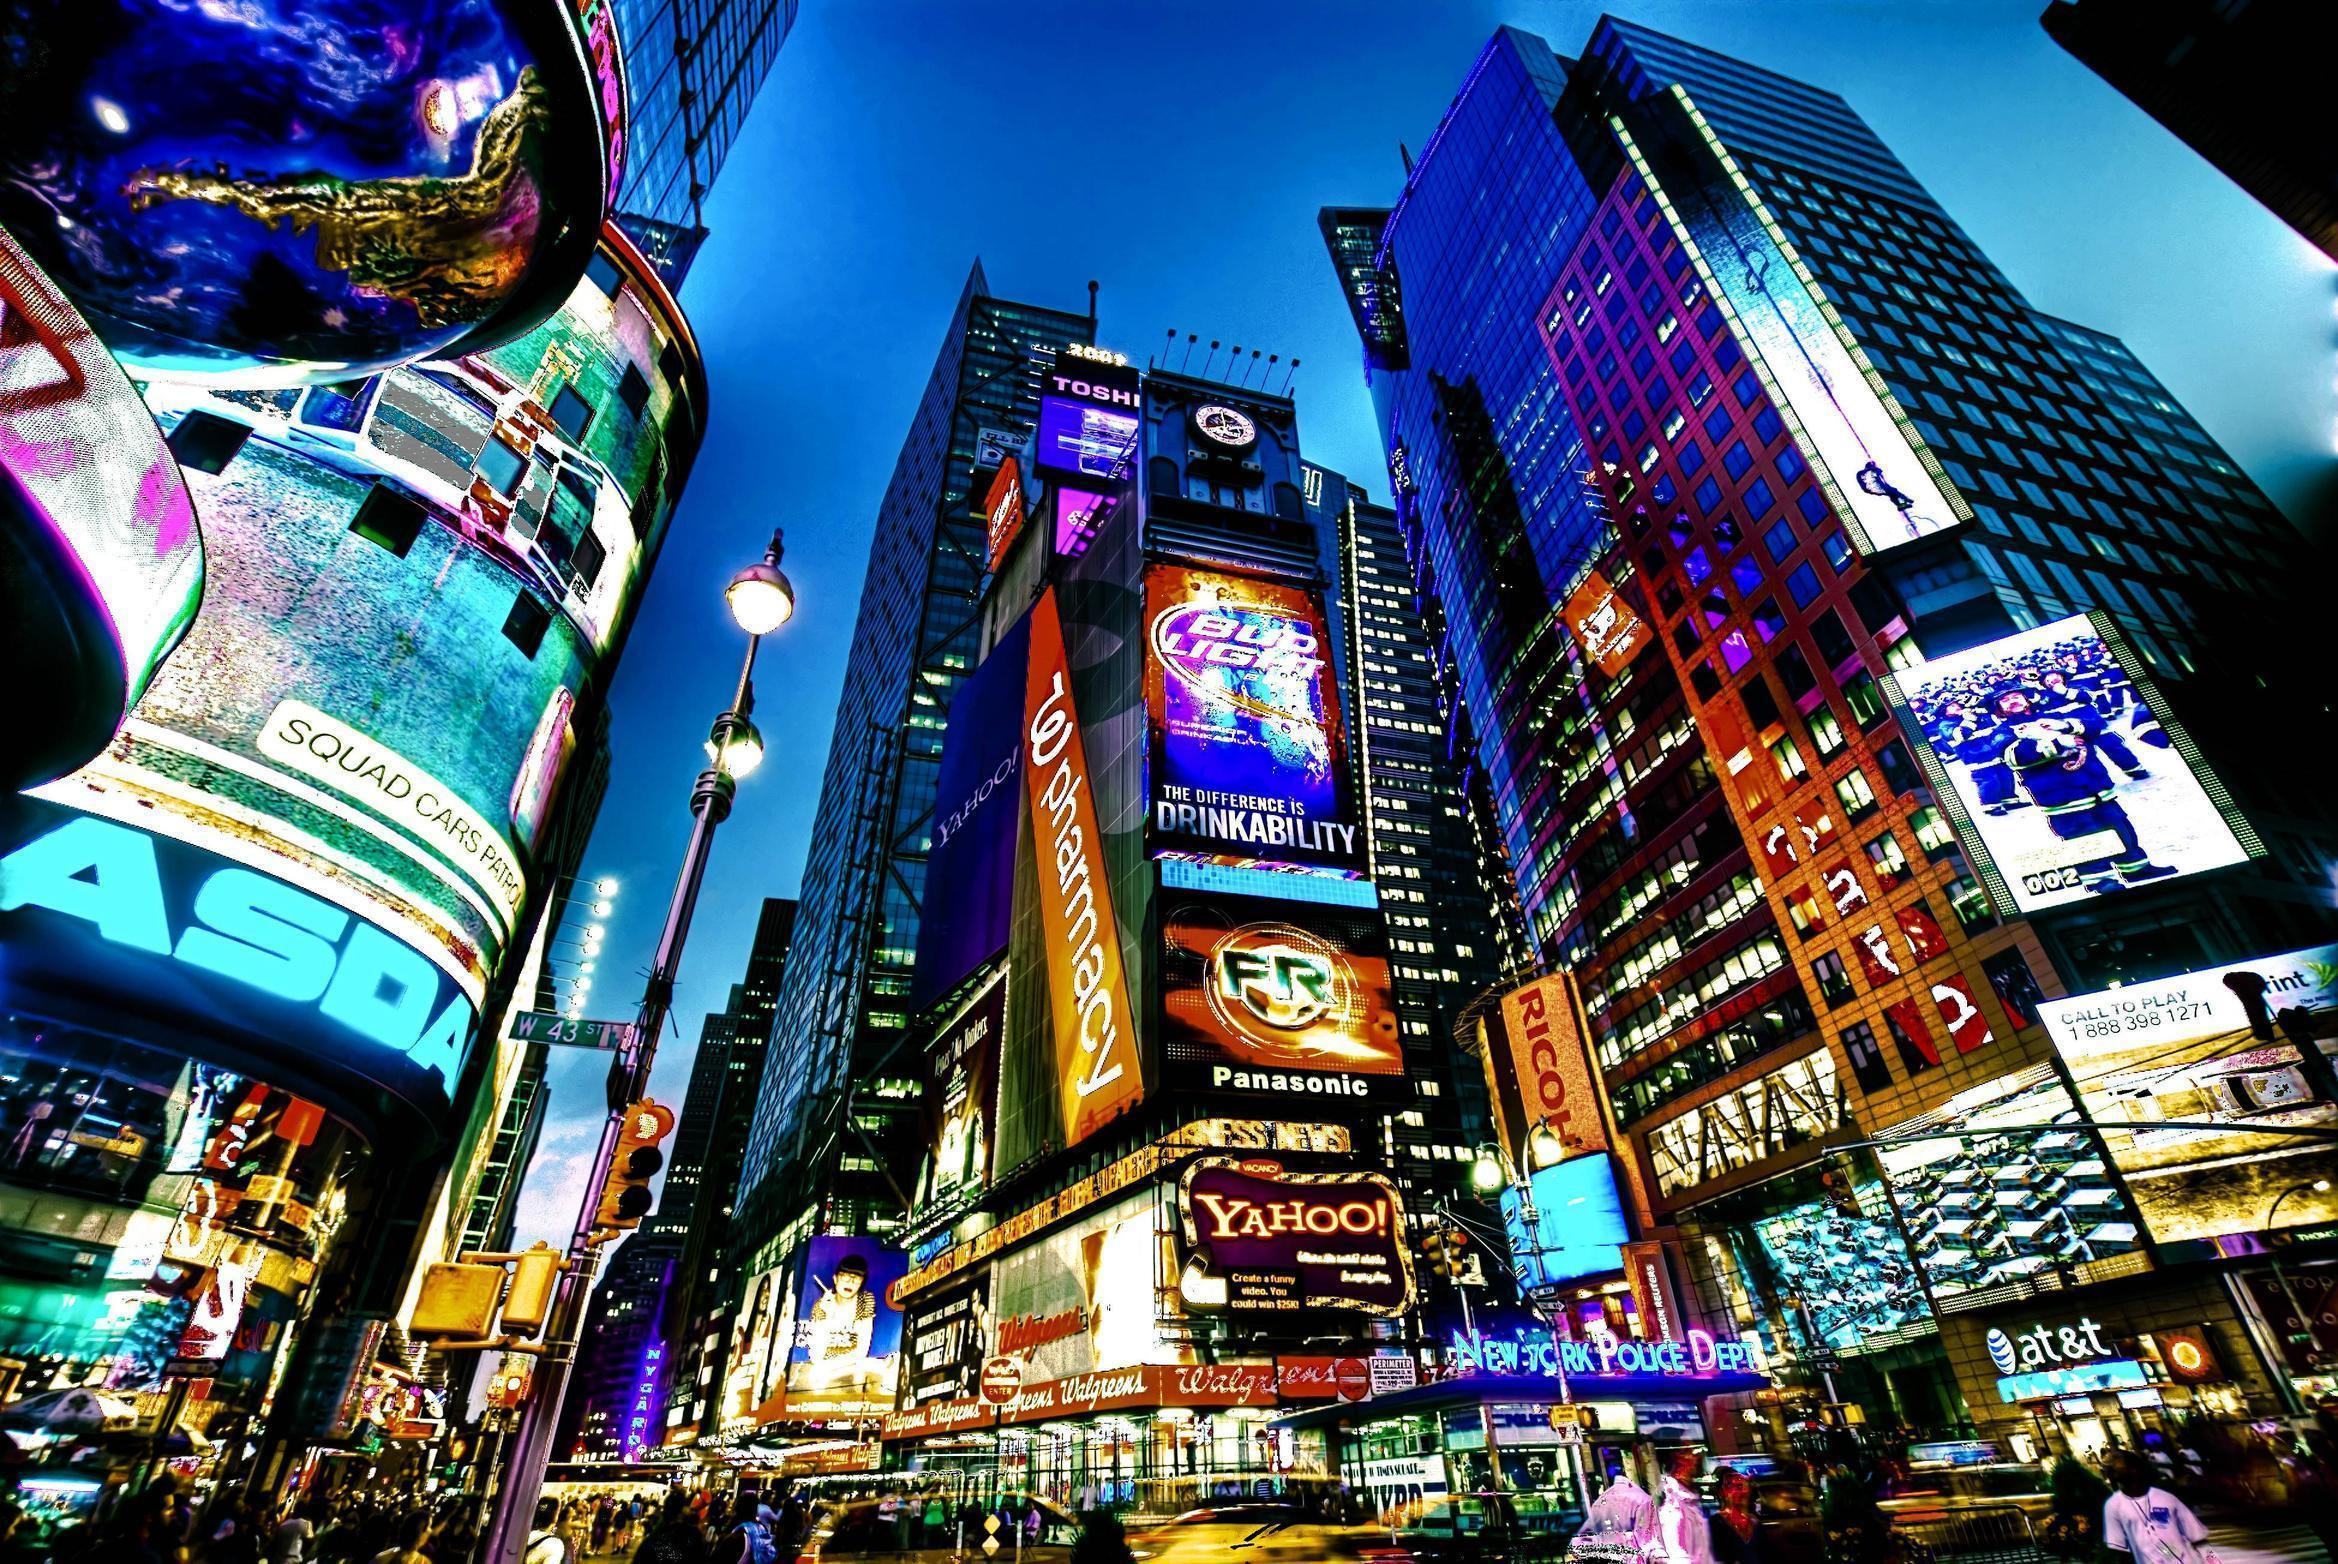 Times Square New York City - Cities Wallpapers